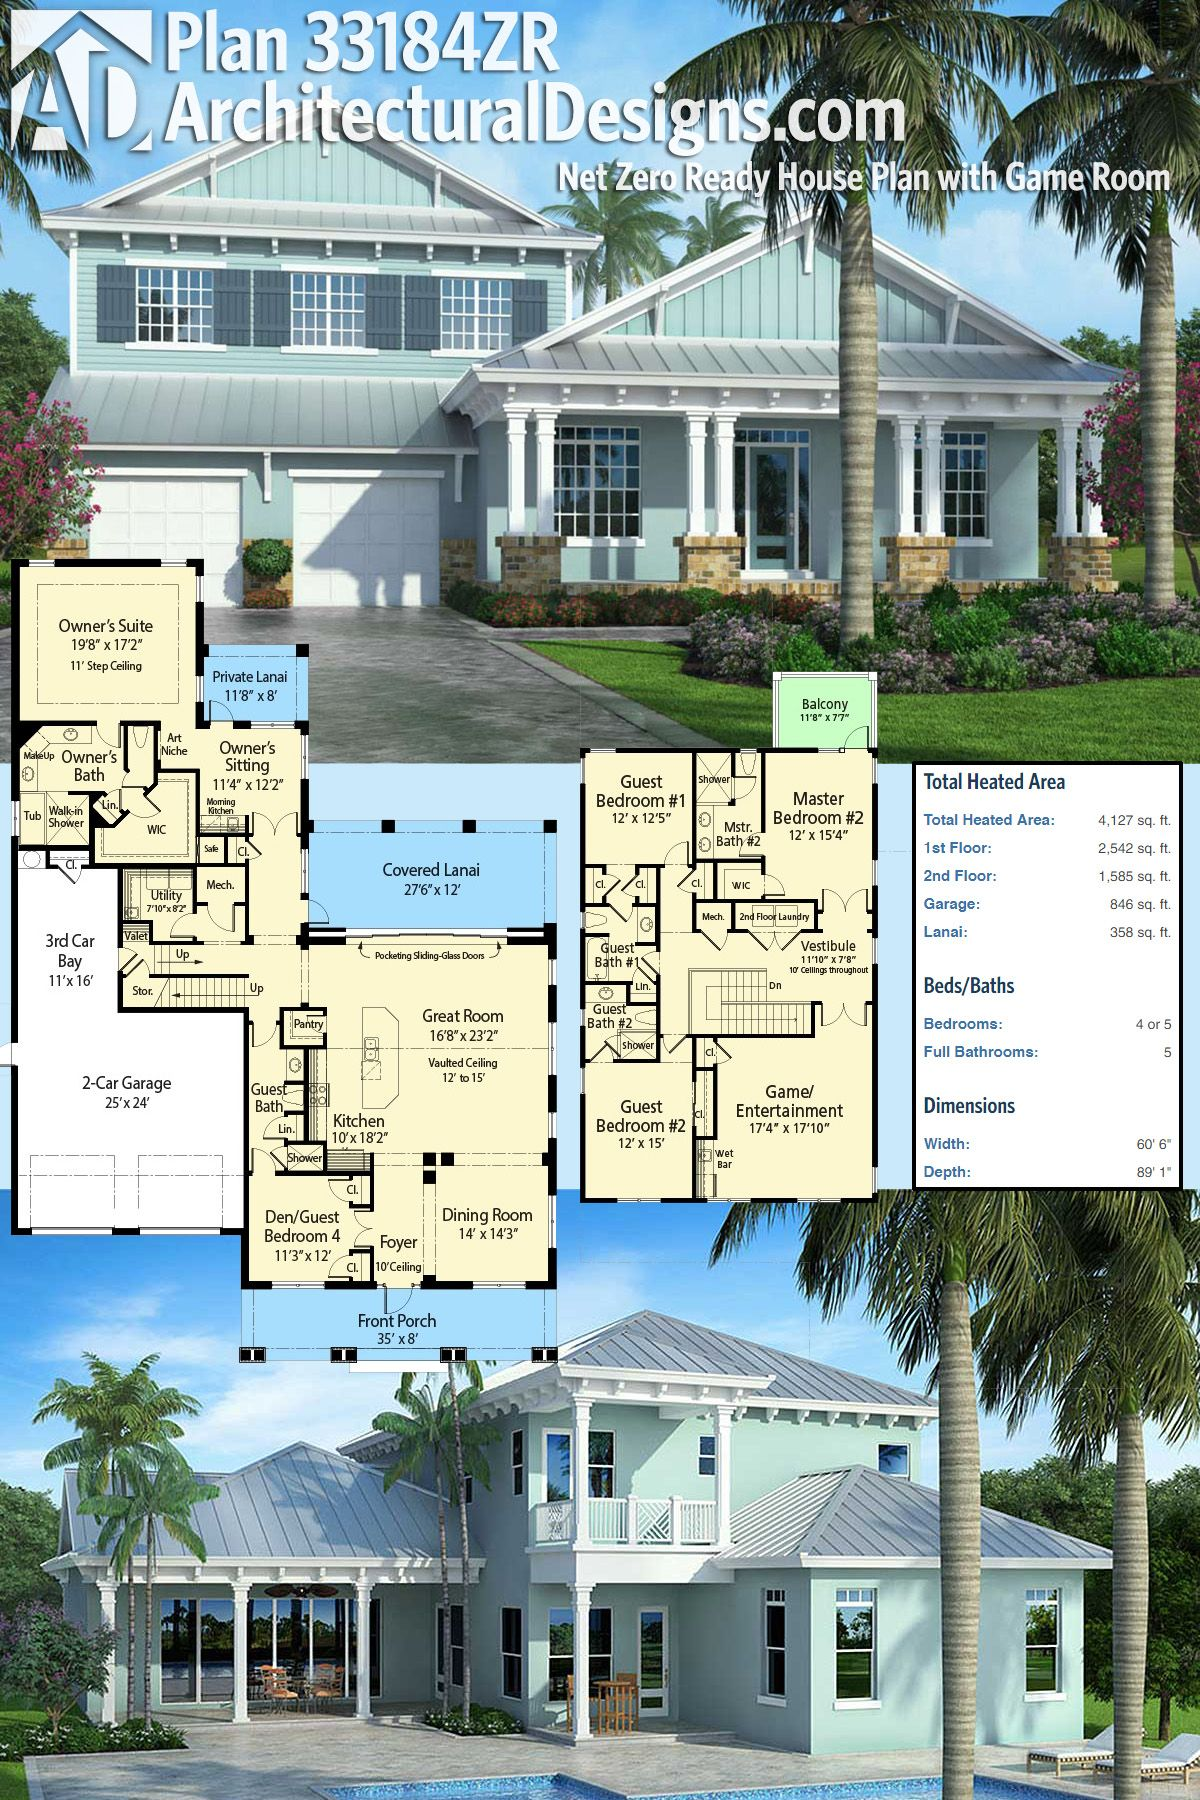 Architectural Designs House Plan 33184ZR has a